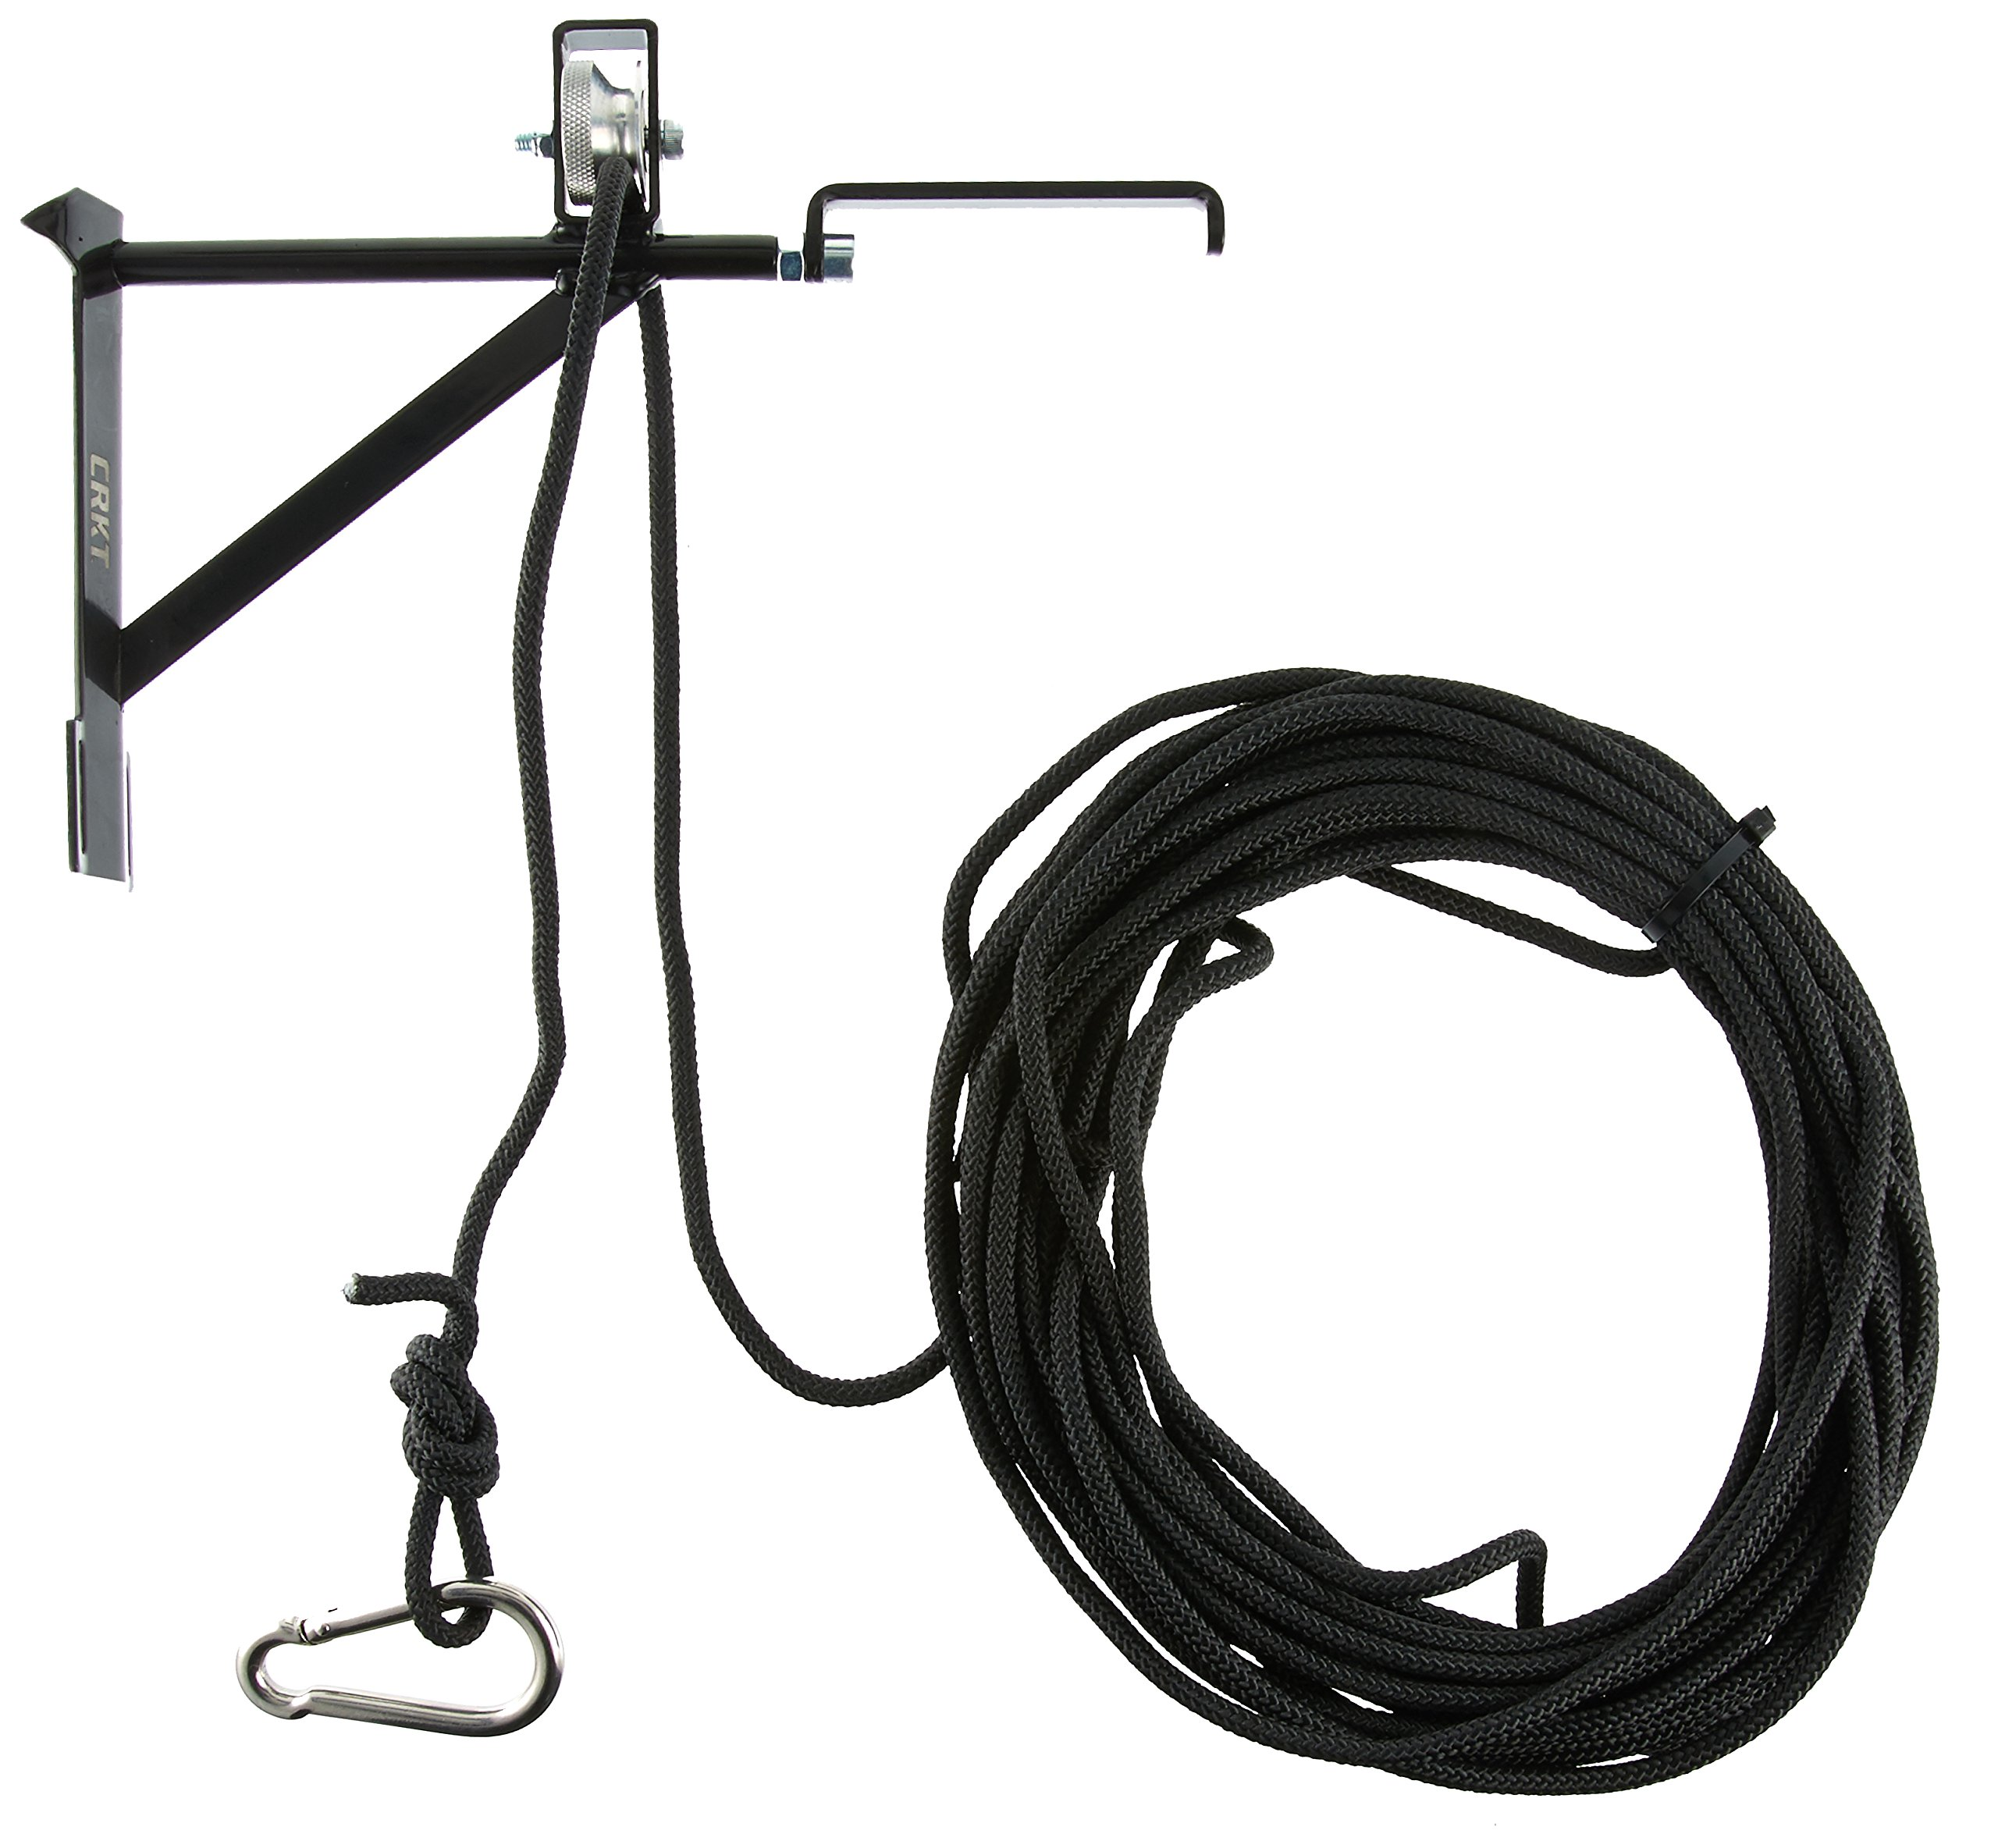 CRKT Hoist'N Lok Tree Stand Hoist Hunting Gear Hoist, Pulley and Extension Arm, Secure Cam Lock, Tree Strap and Rope HOIST2